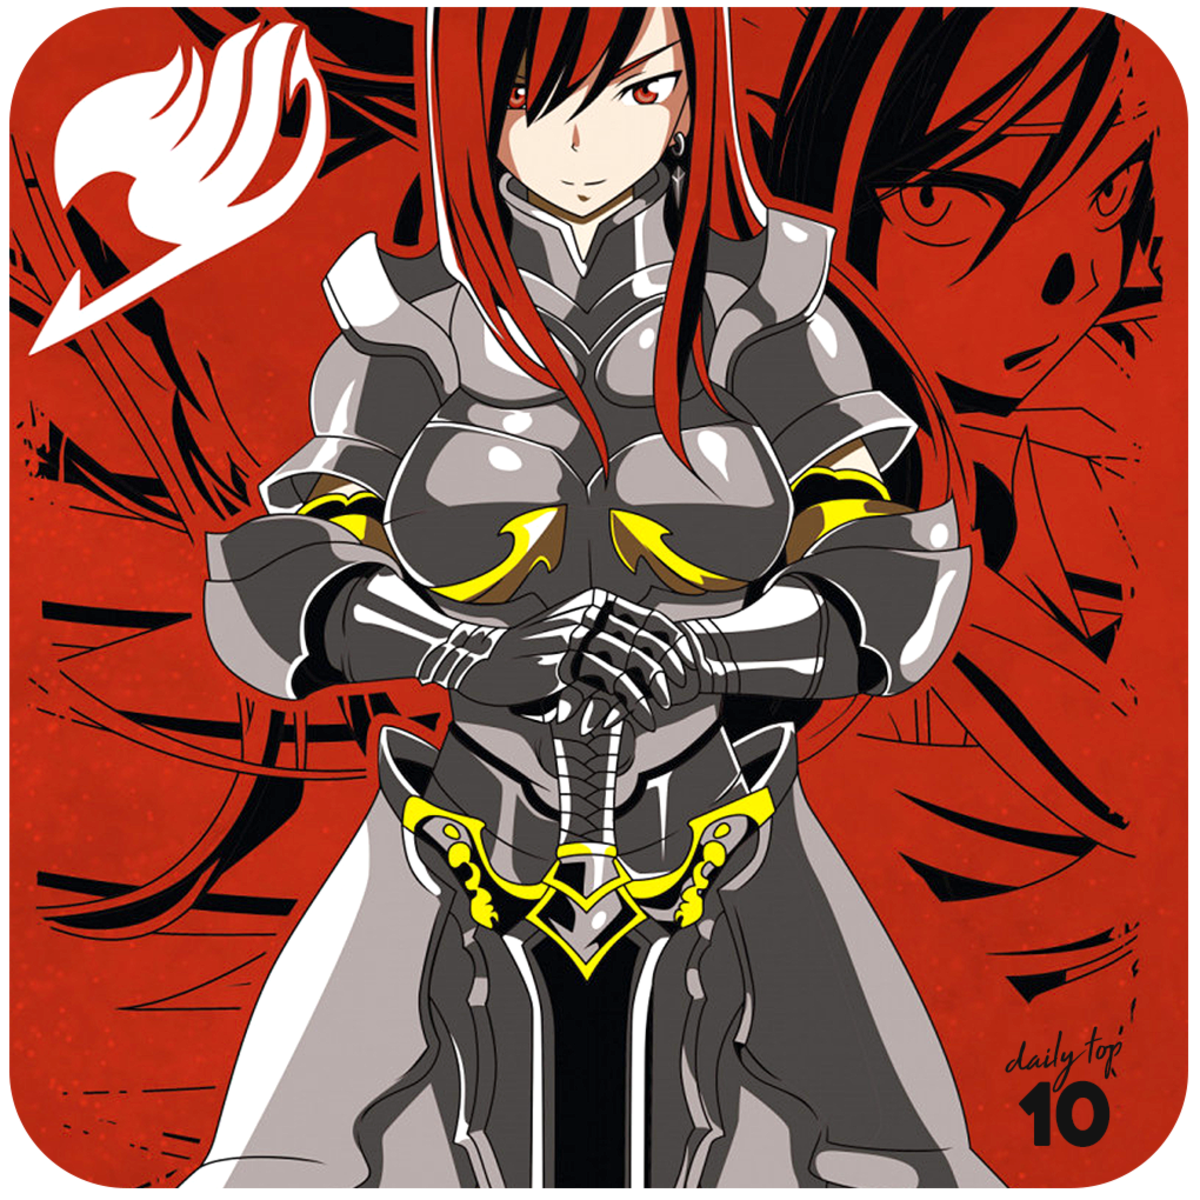 Erza Scarlet with her Black Wing Armor.